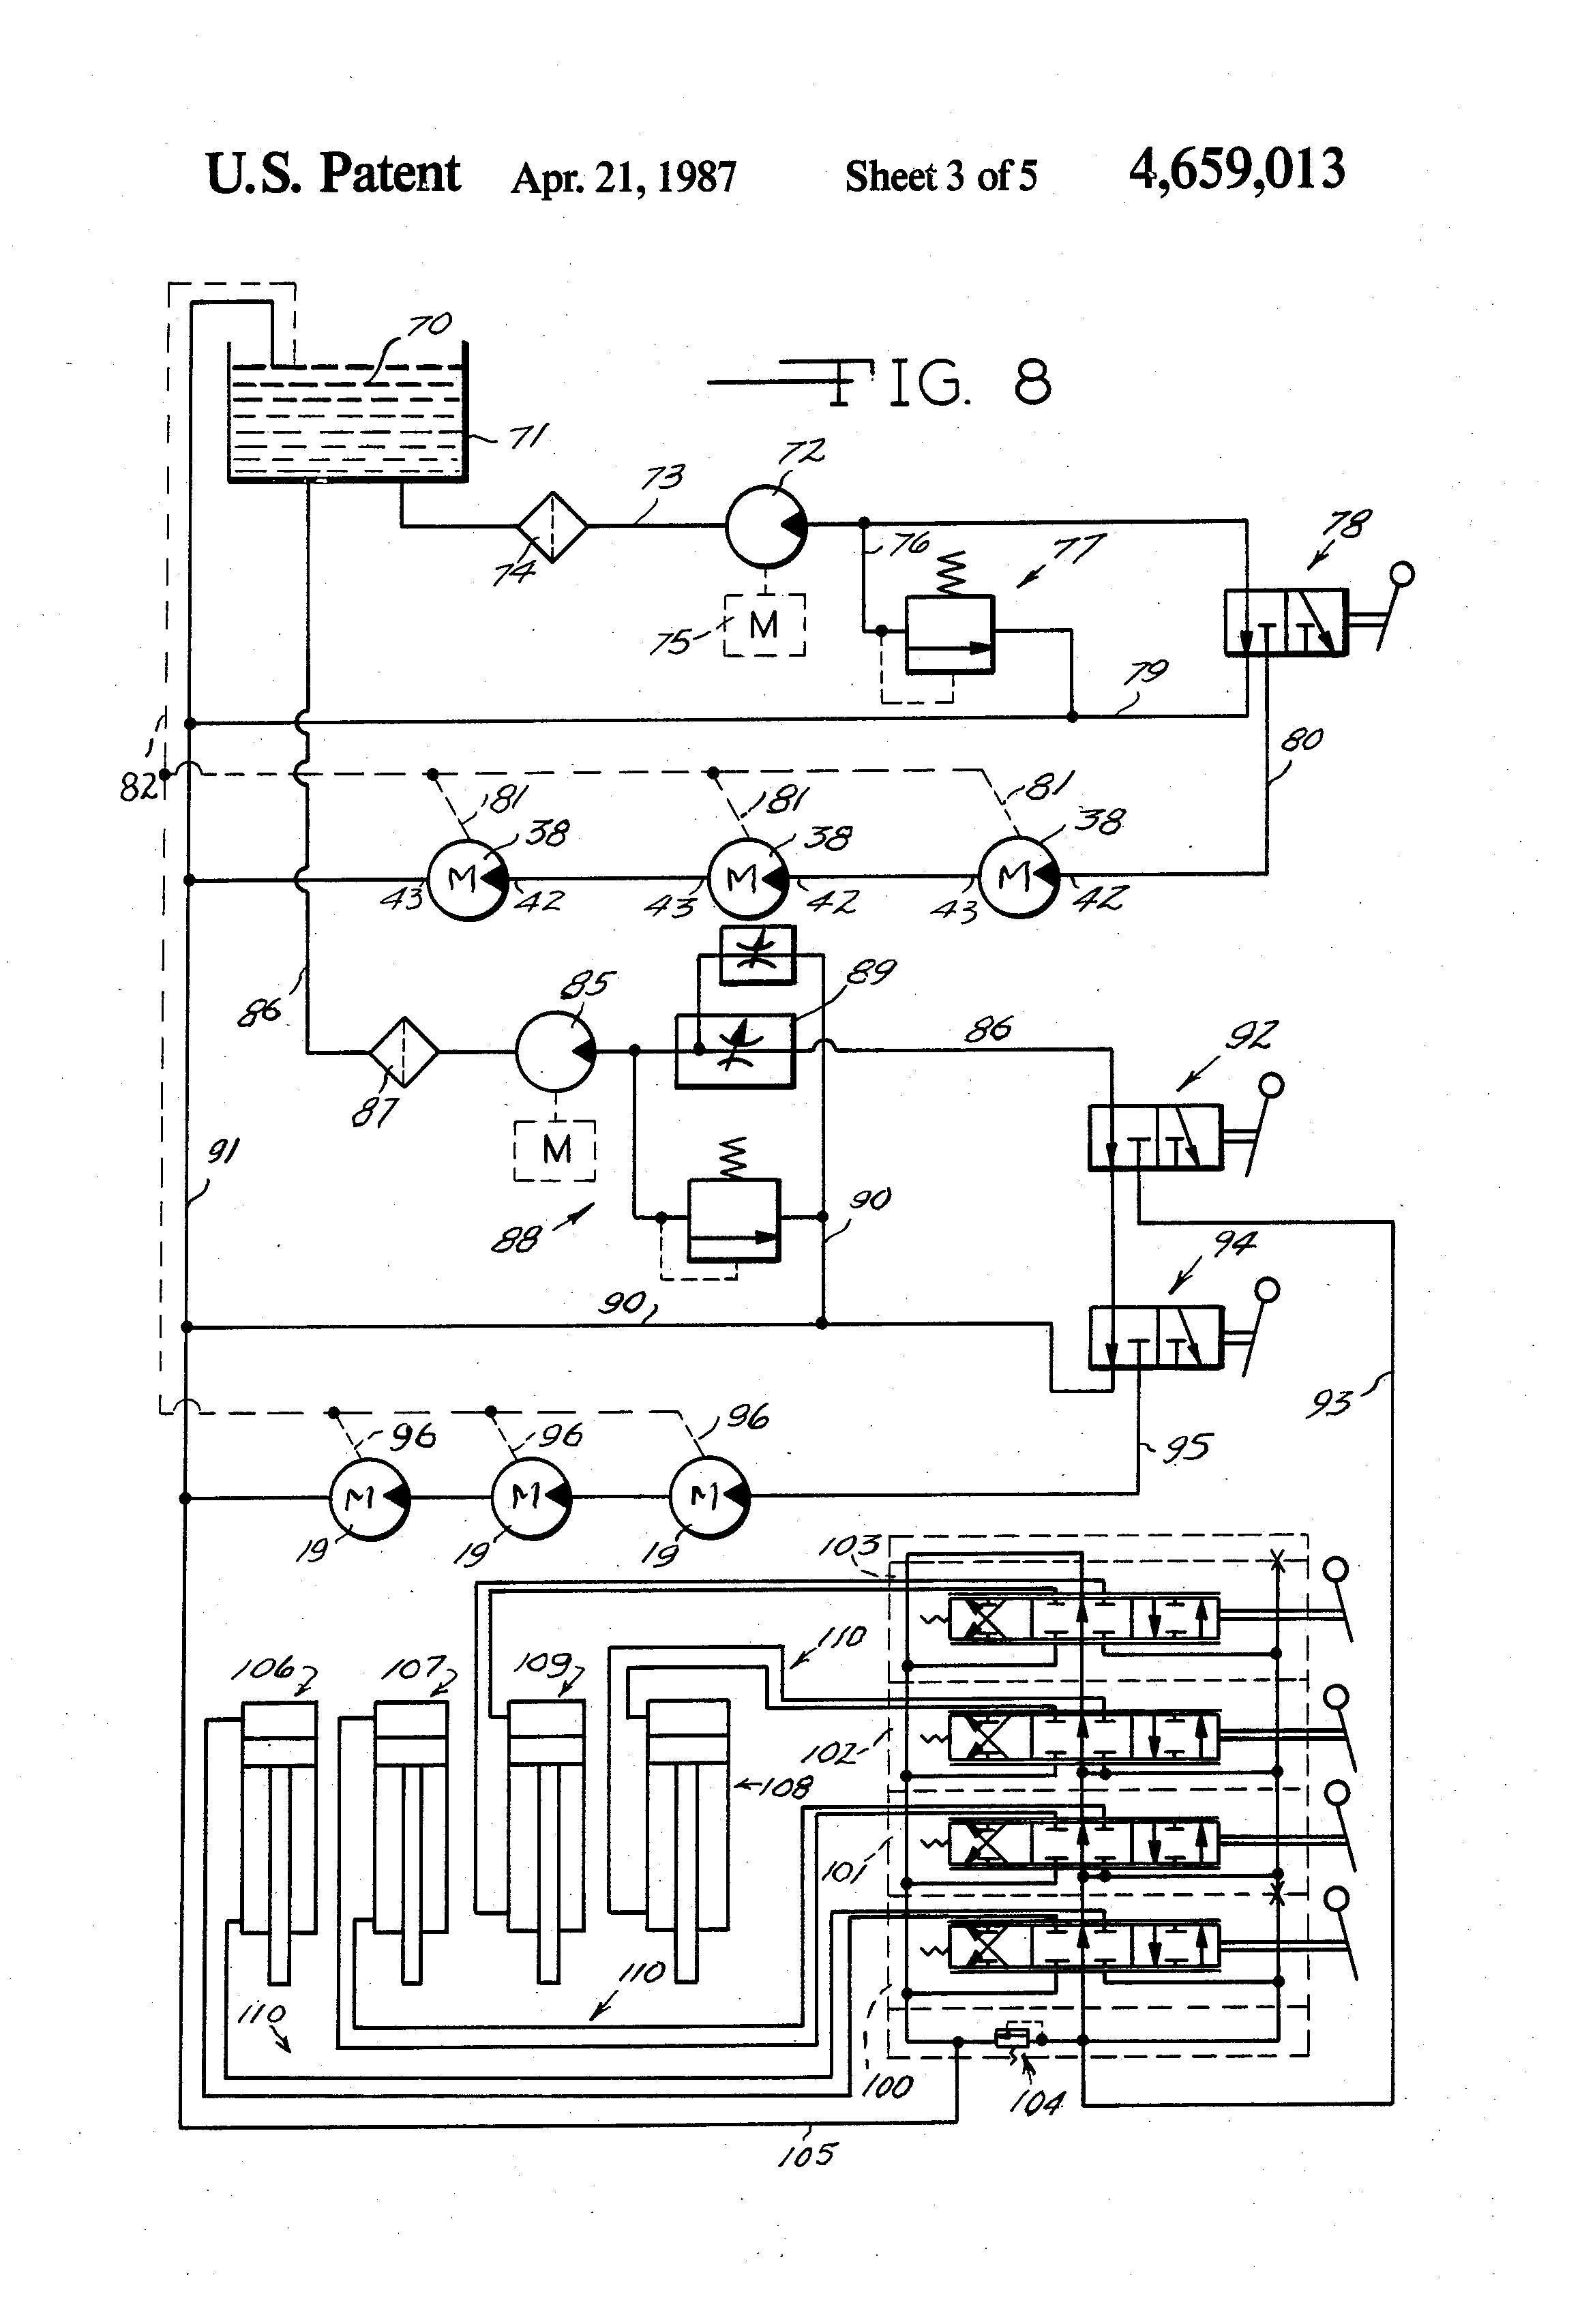 Berner Air Curtain Wiring Diagram - Berner Air Curtain Wiring Diagram Wiring Diagram Schematics Berner Air Curtain Wiring Diagram Pretty Air 20c